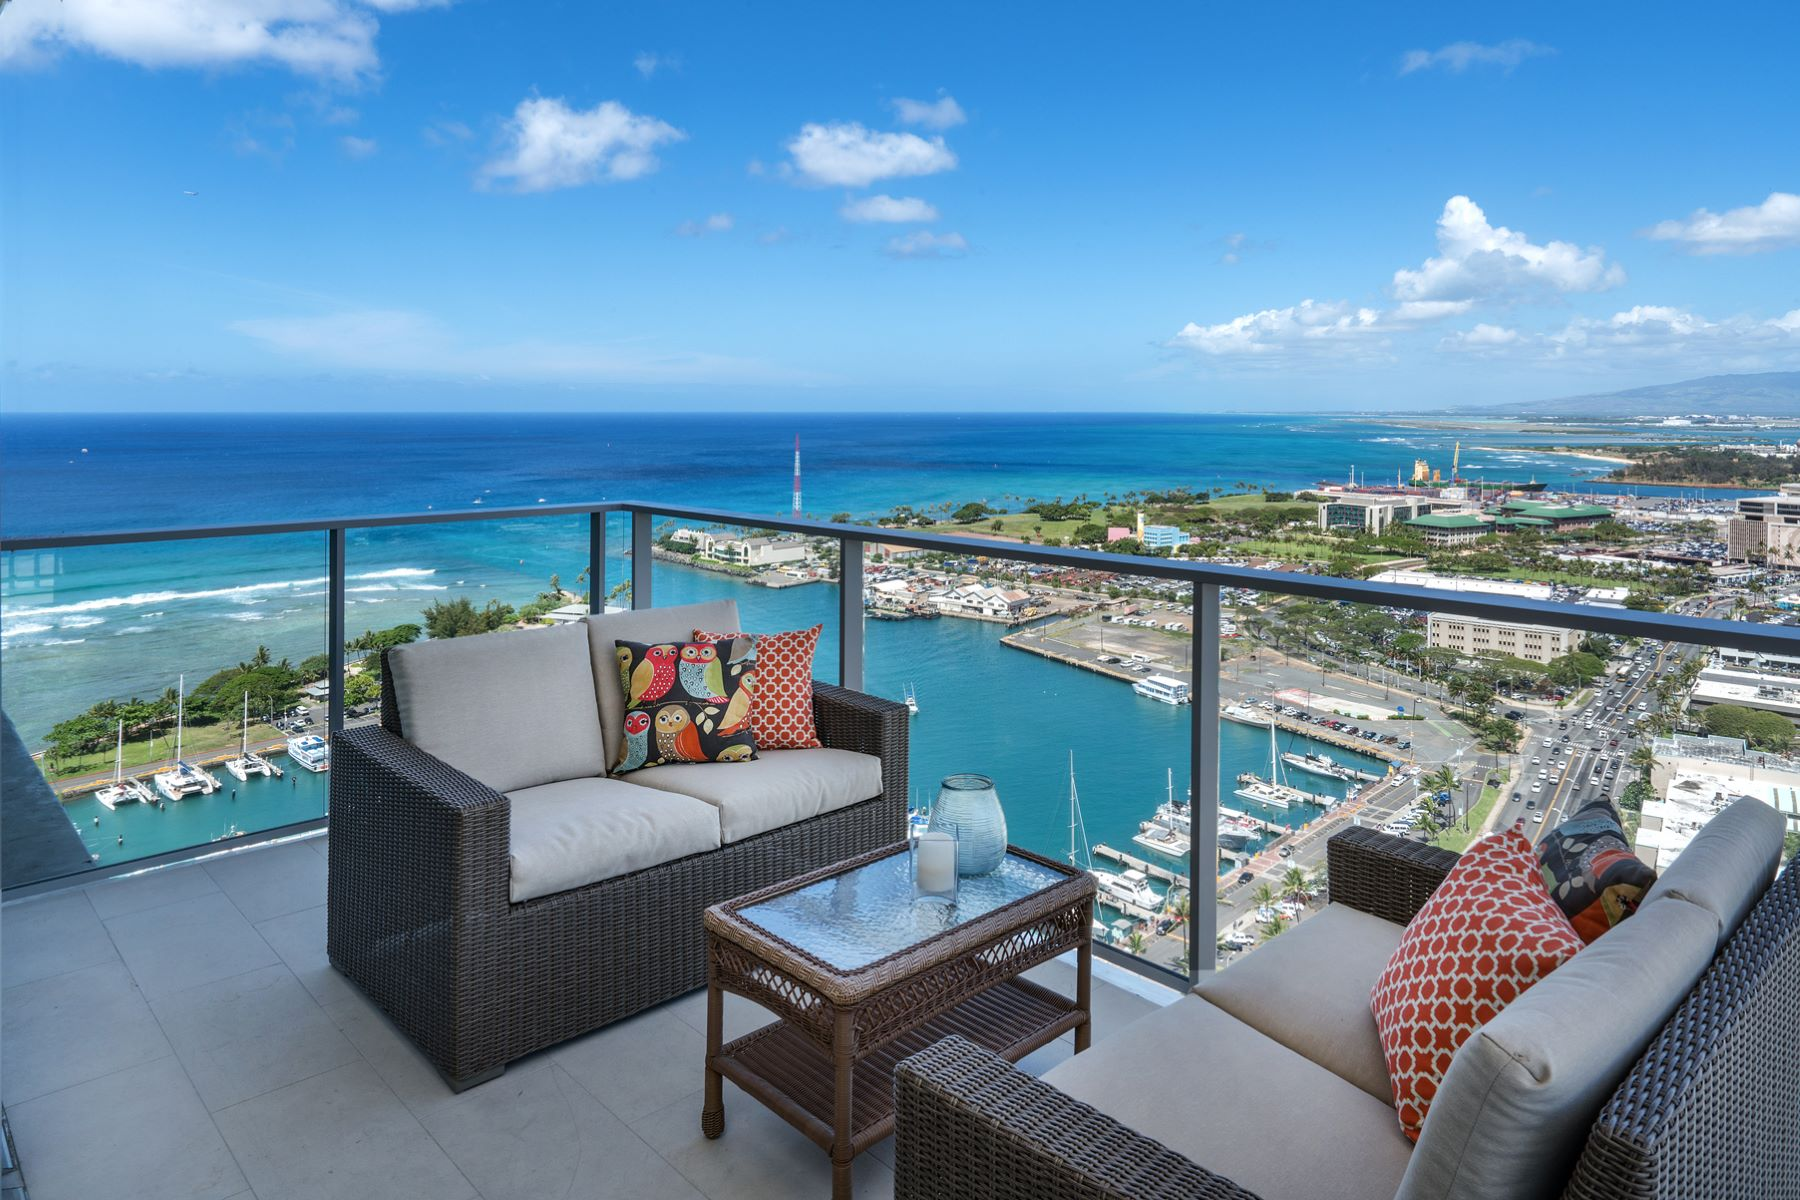 Additional photo for property listing at Stunning Waiea Penthouse 1118 Ala Moana Boulevard #PH 3203 Honolulu, Hawaii 96814 United States